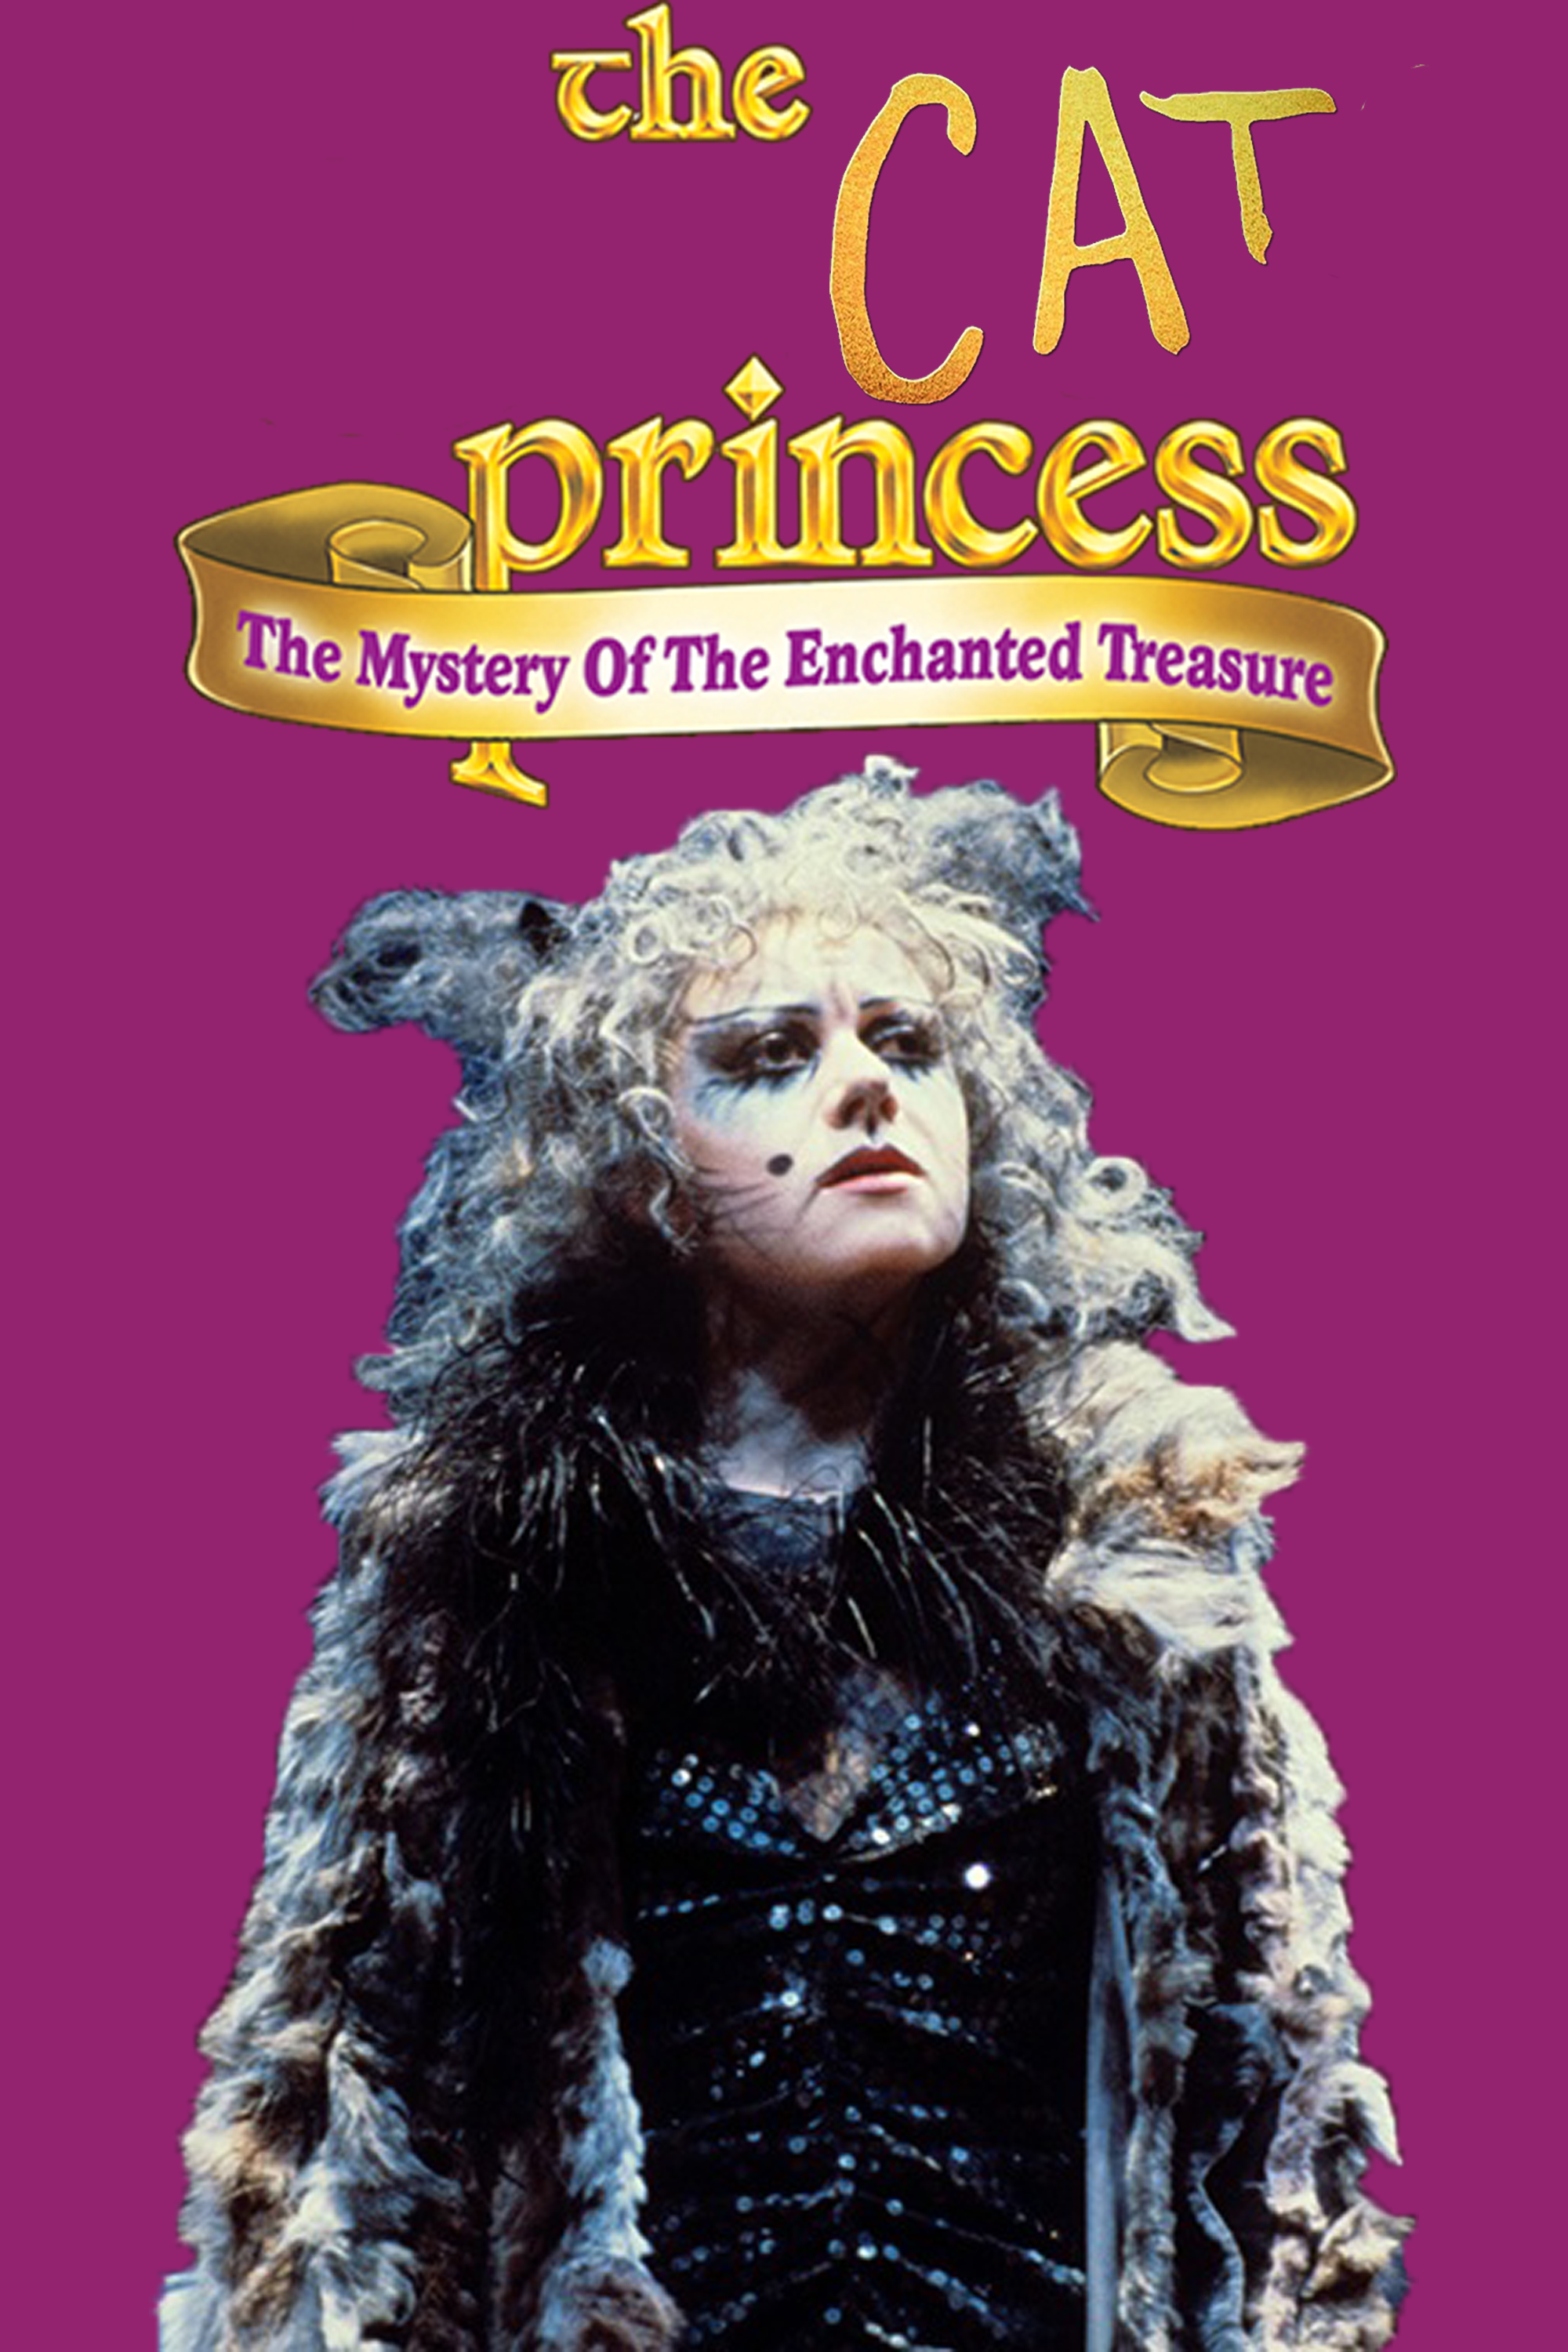 The Cat Princess: The Mystery of the Enchanted Kingdom